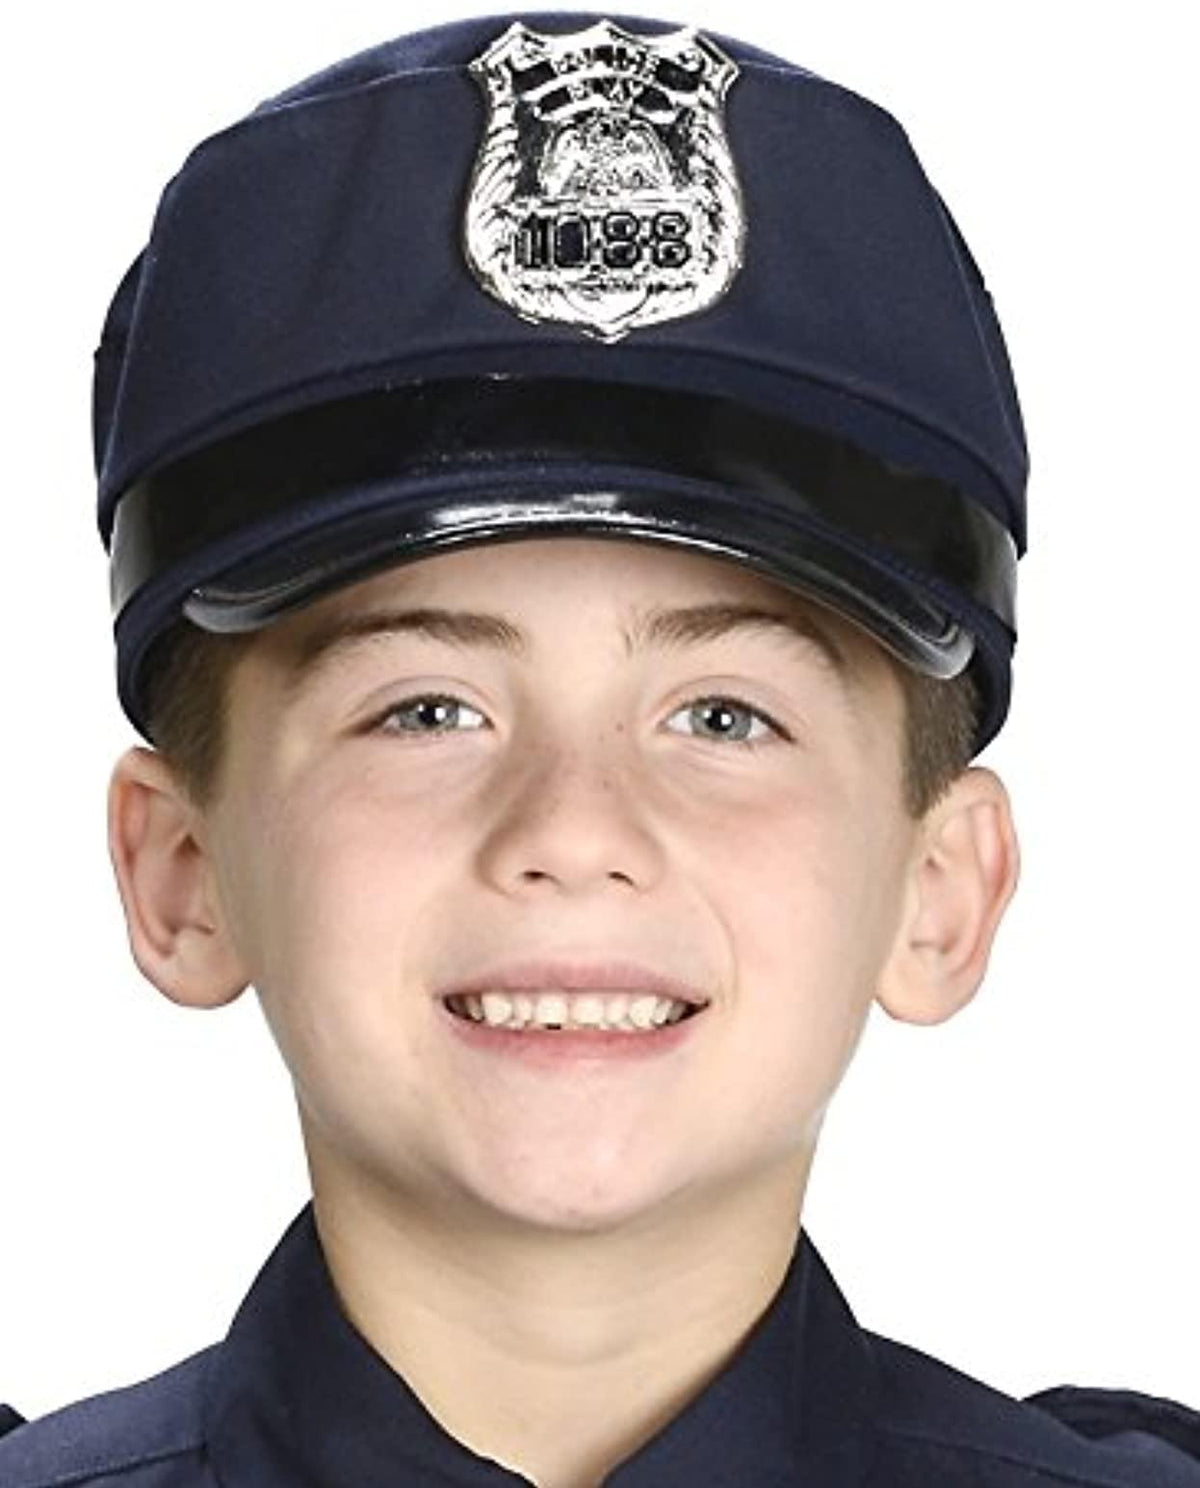 Police Cap Adjustable Child Costume Hat | Youth Size